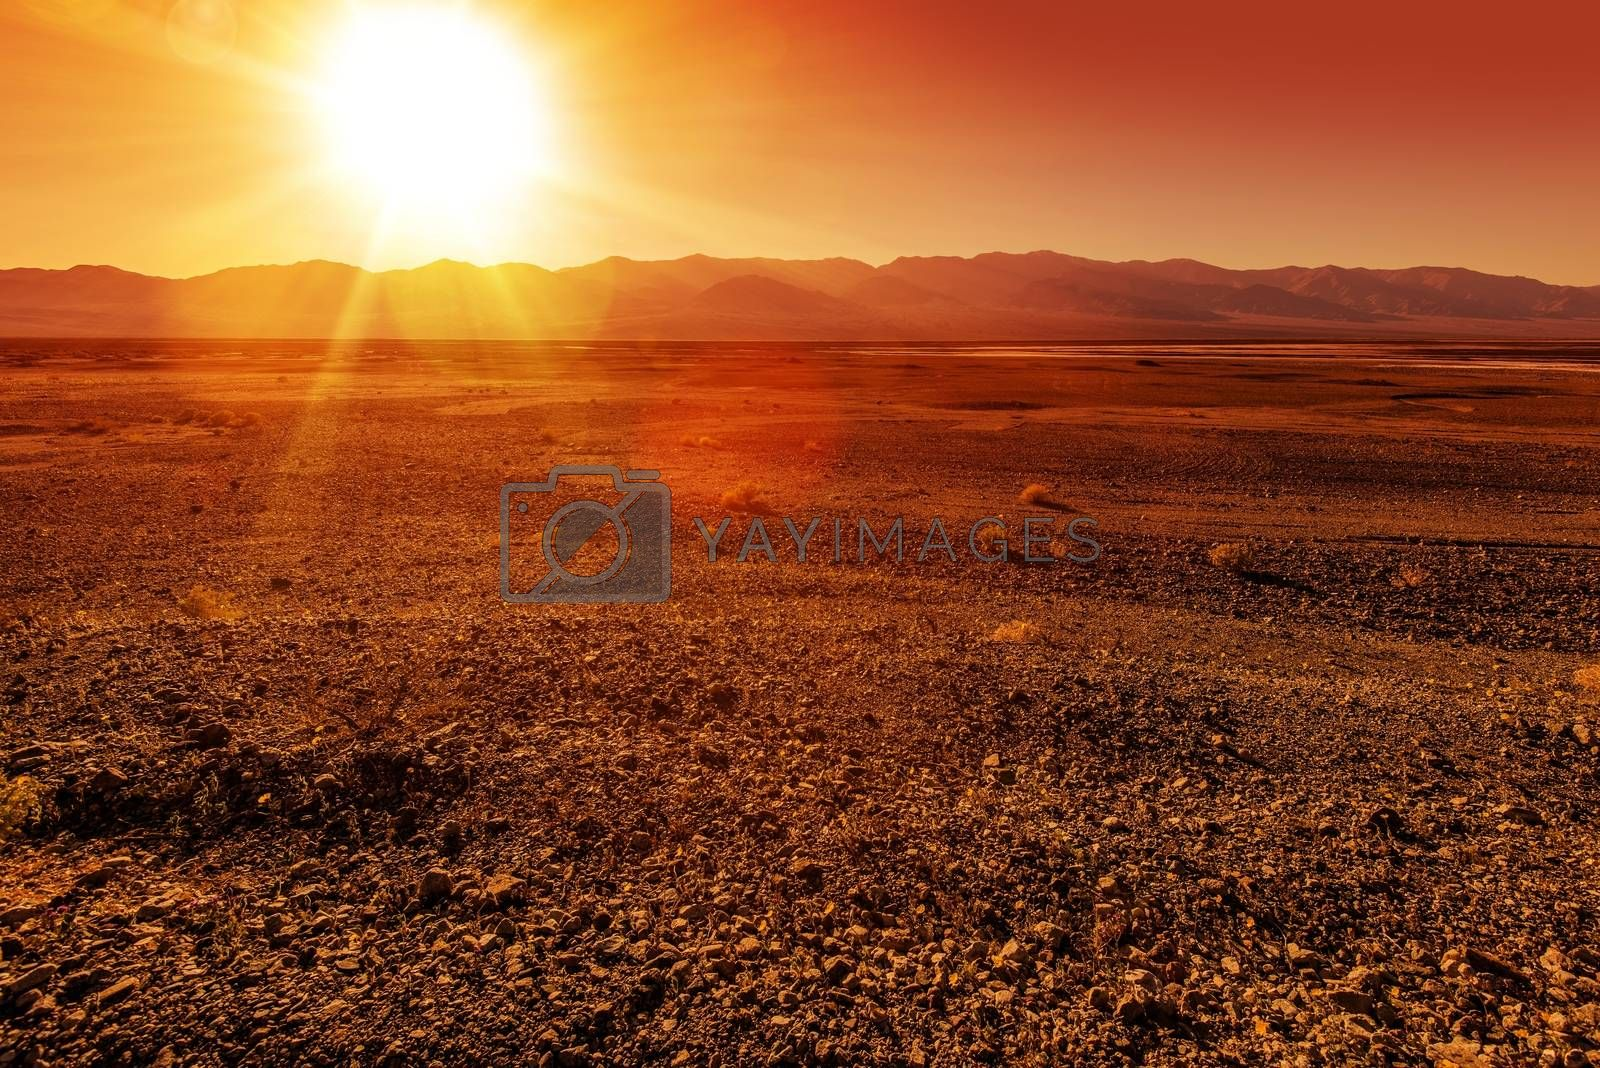 Unpleasantly Rough Death Valley Landscape. Harsh Valley Land. California, United States.